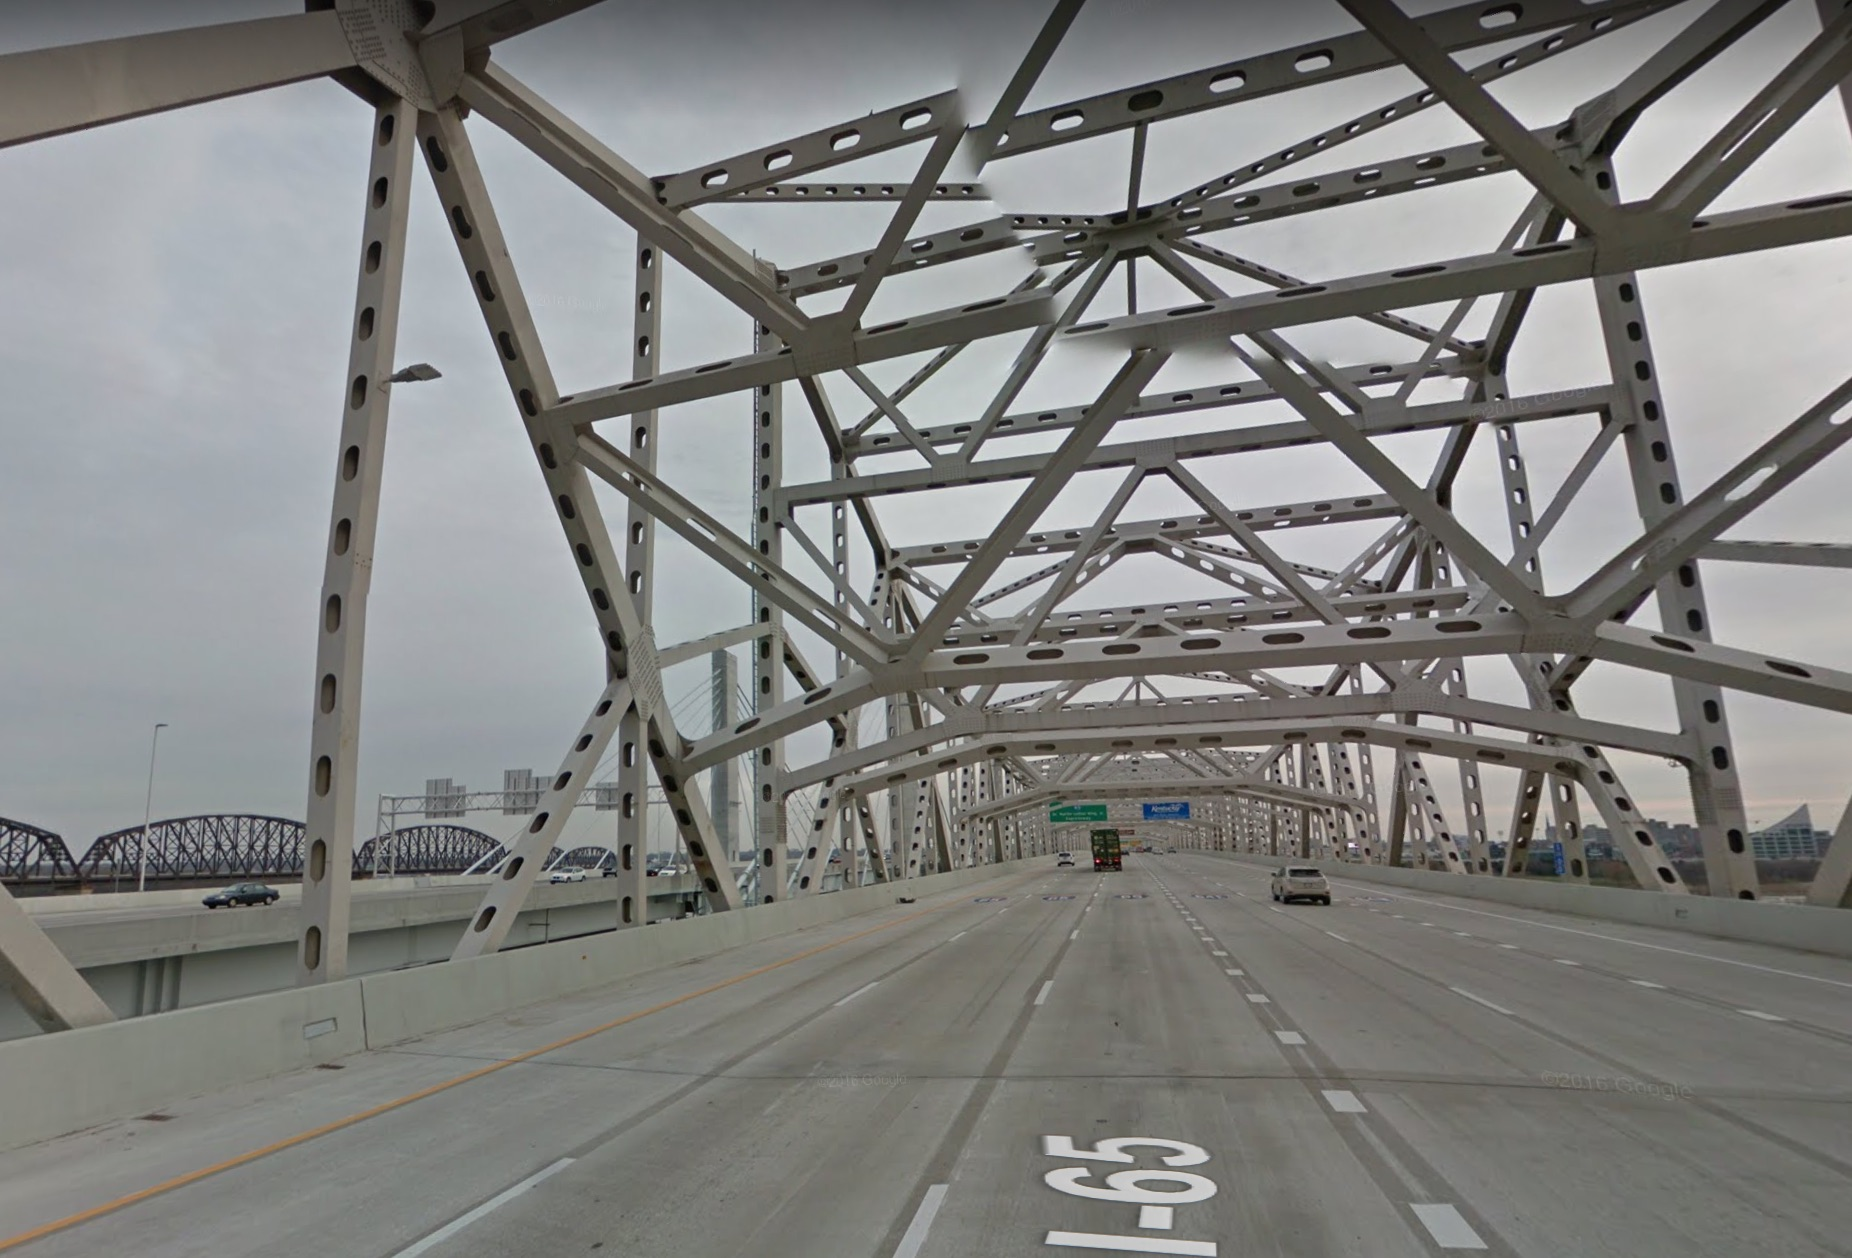 Looking down the Kennedy Memorial Bridge. Its twin, the Lincoln Bridge, is seen on the left side of the image. Both look quite empty. (Source: Google Earth)